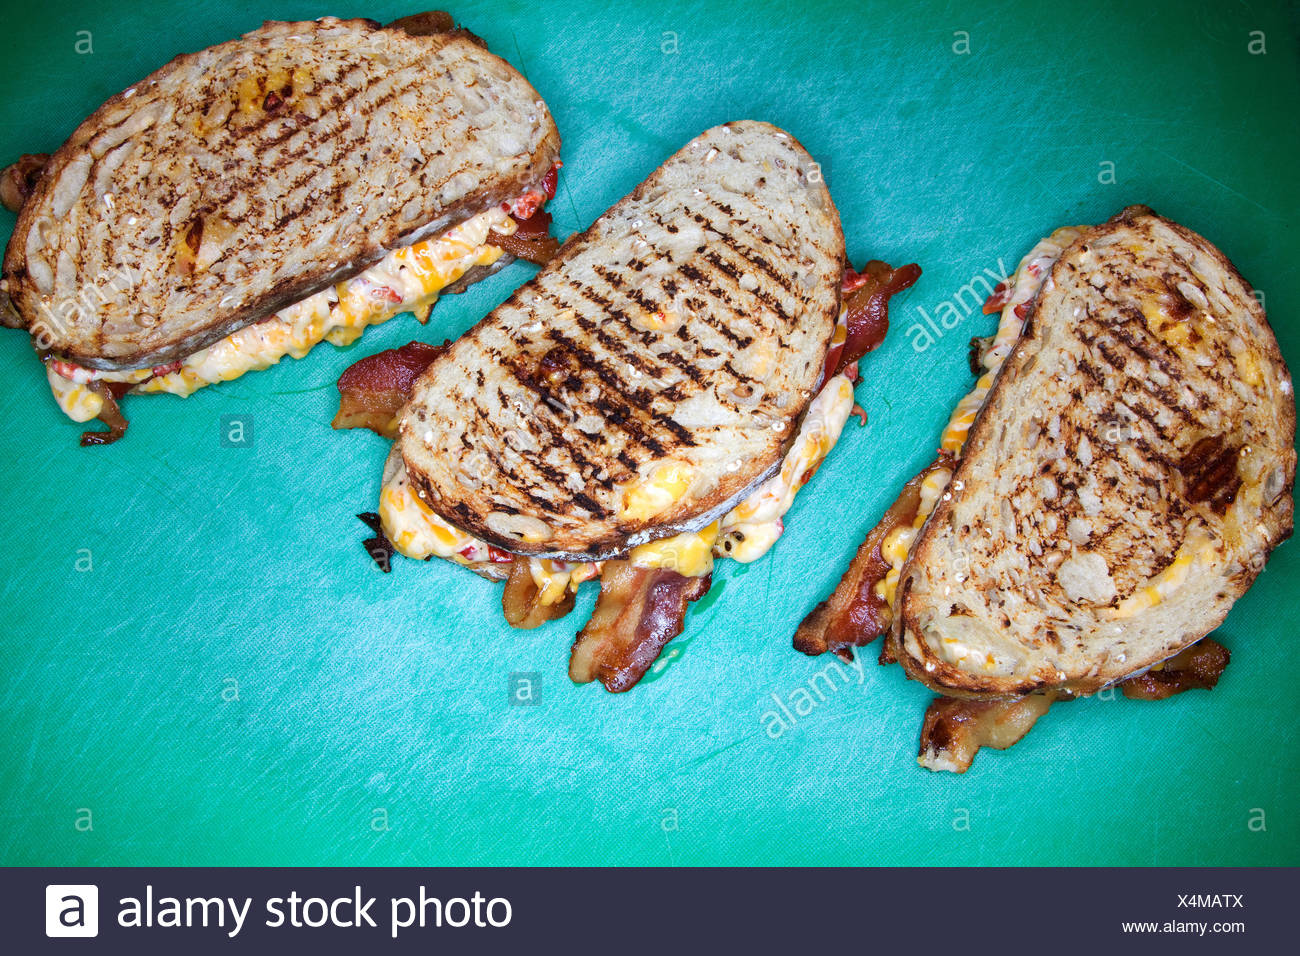 Three grilled cheese sandwiches - Stock Image